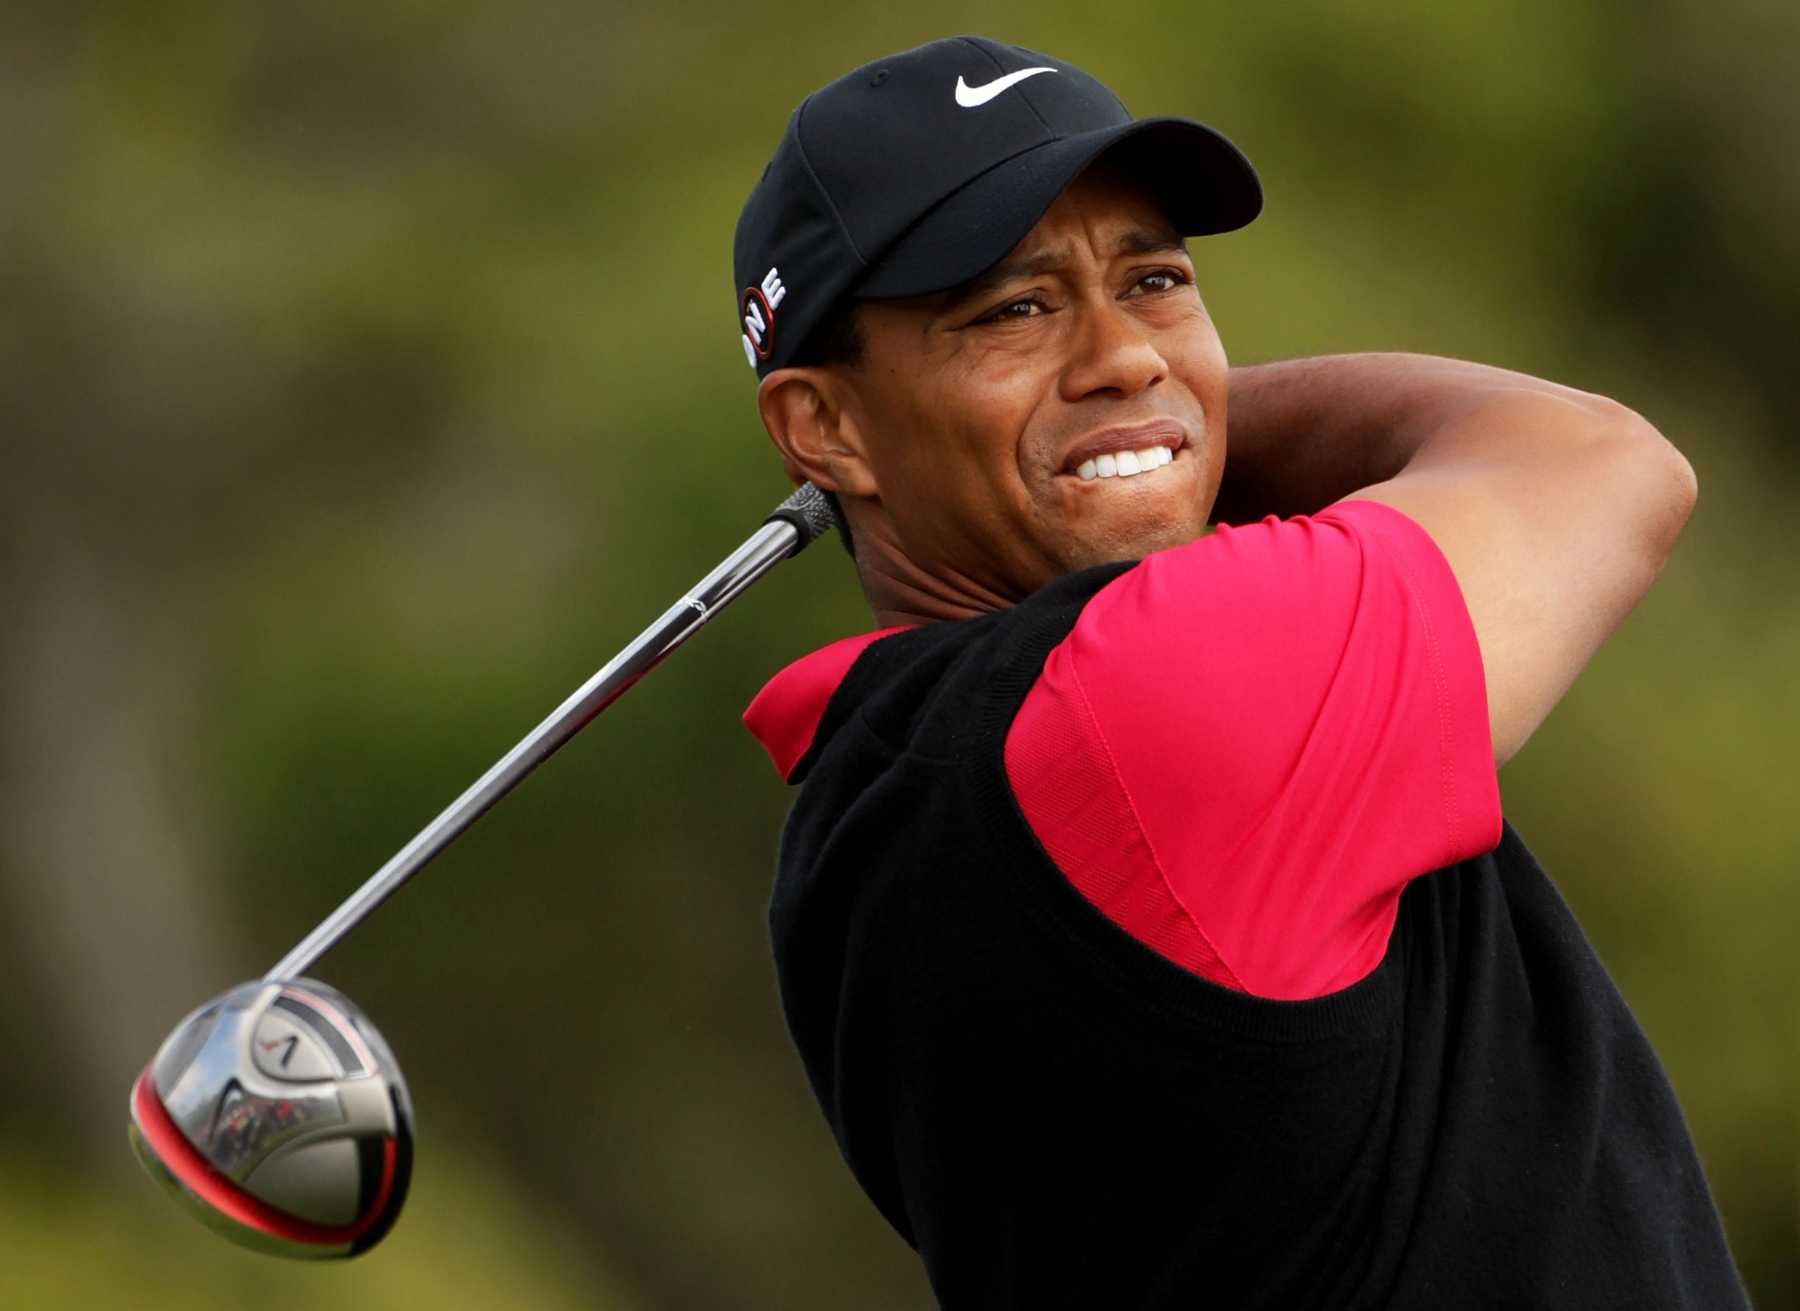 Tiger Woods Claims Alcohol Was Not Involved In His Arrest | woods